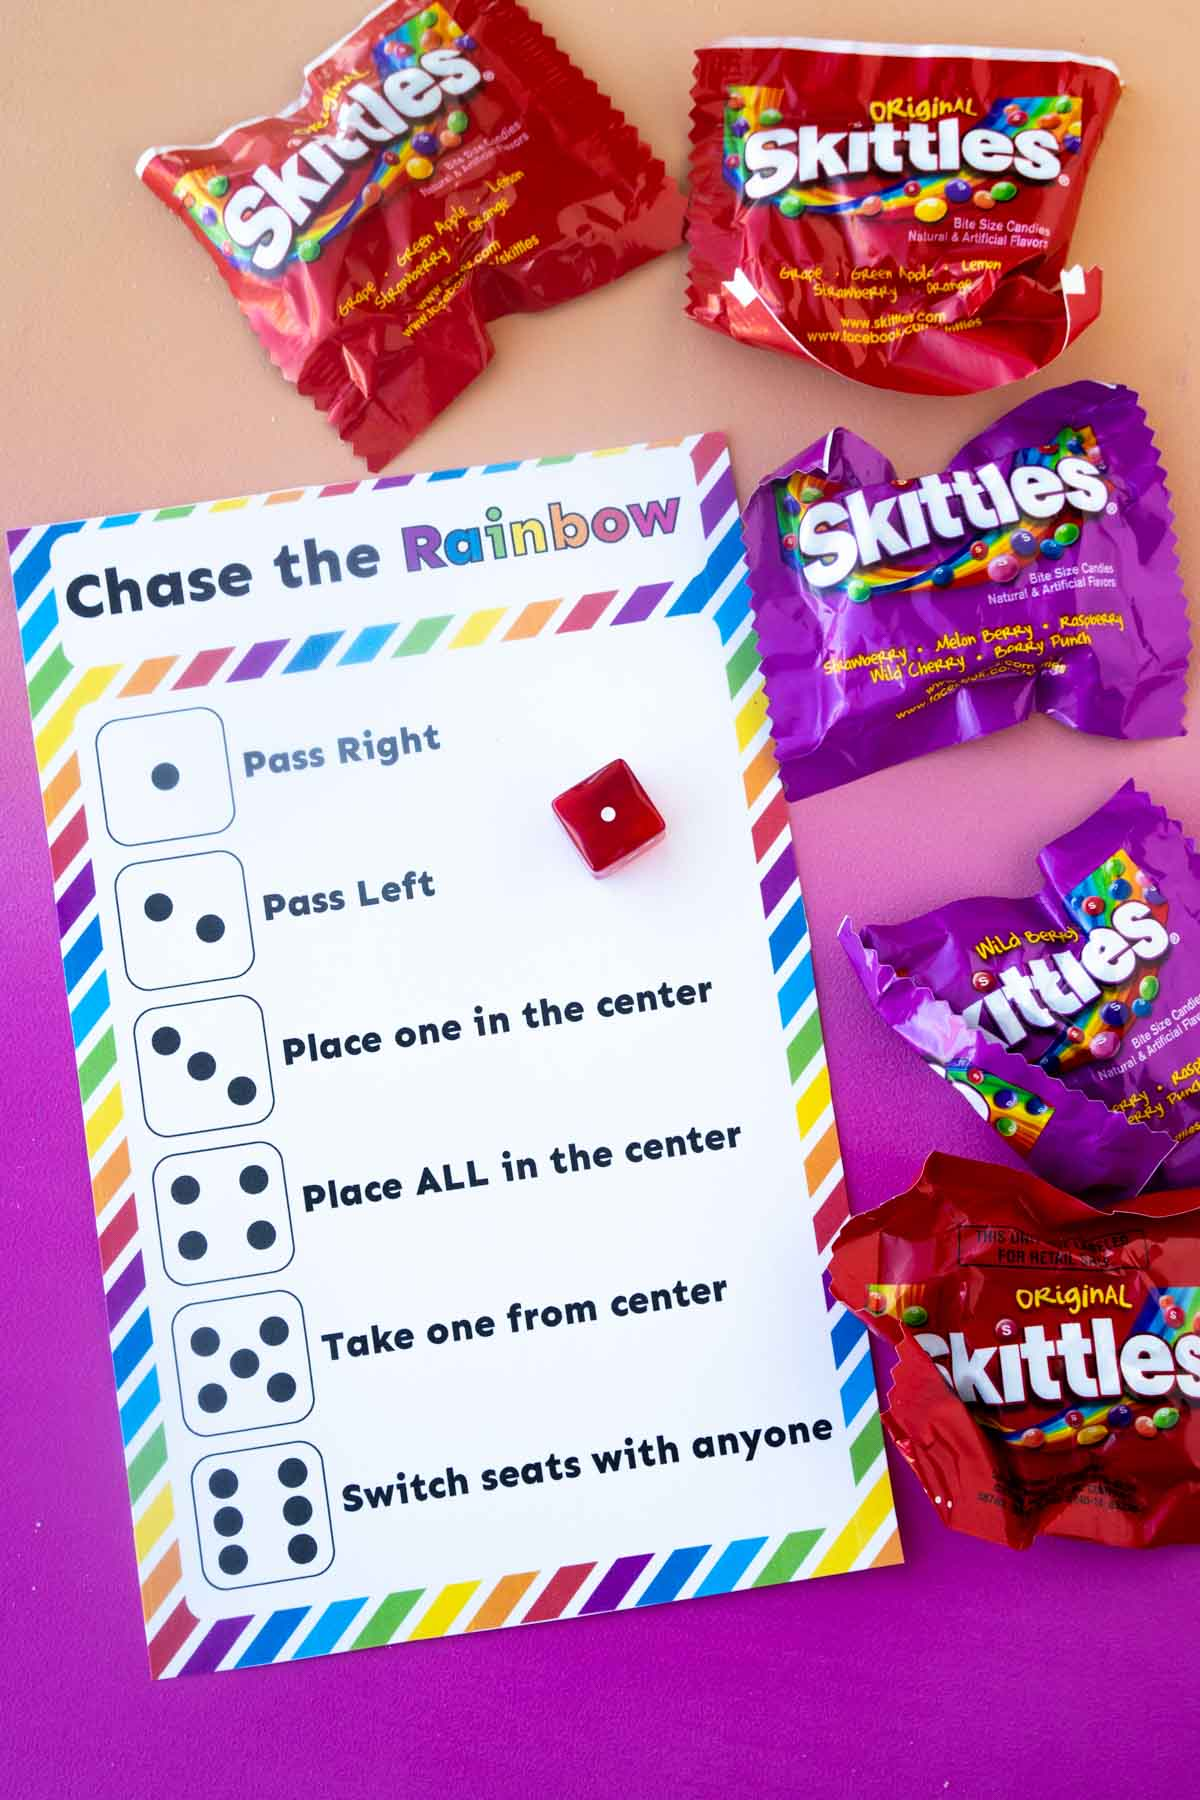 dice skittles game card and bags of skittles